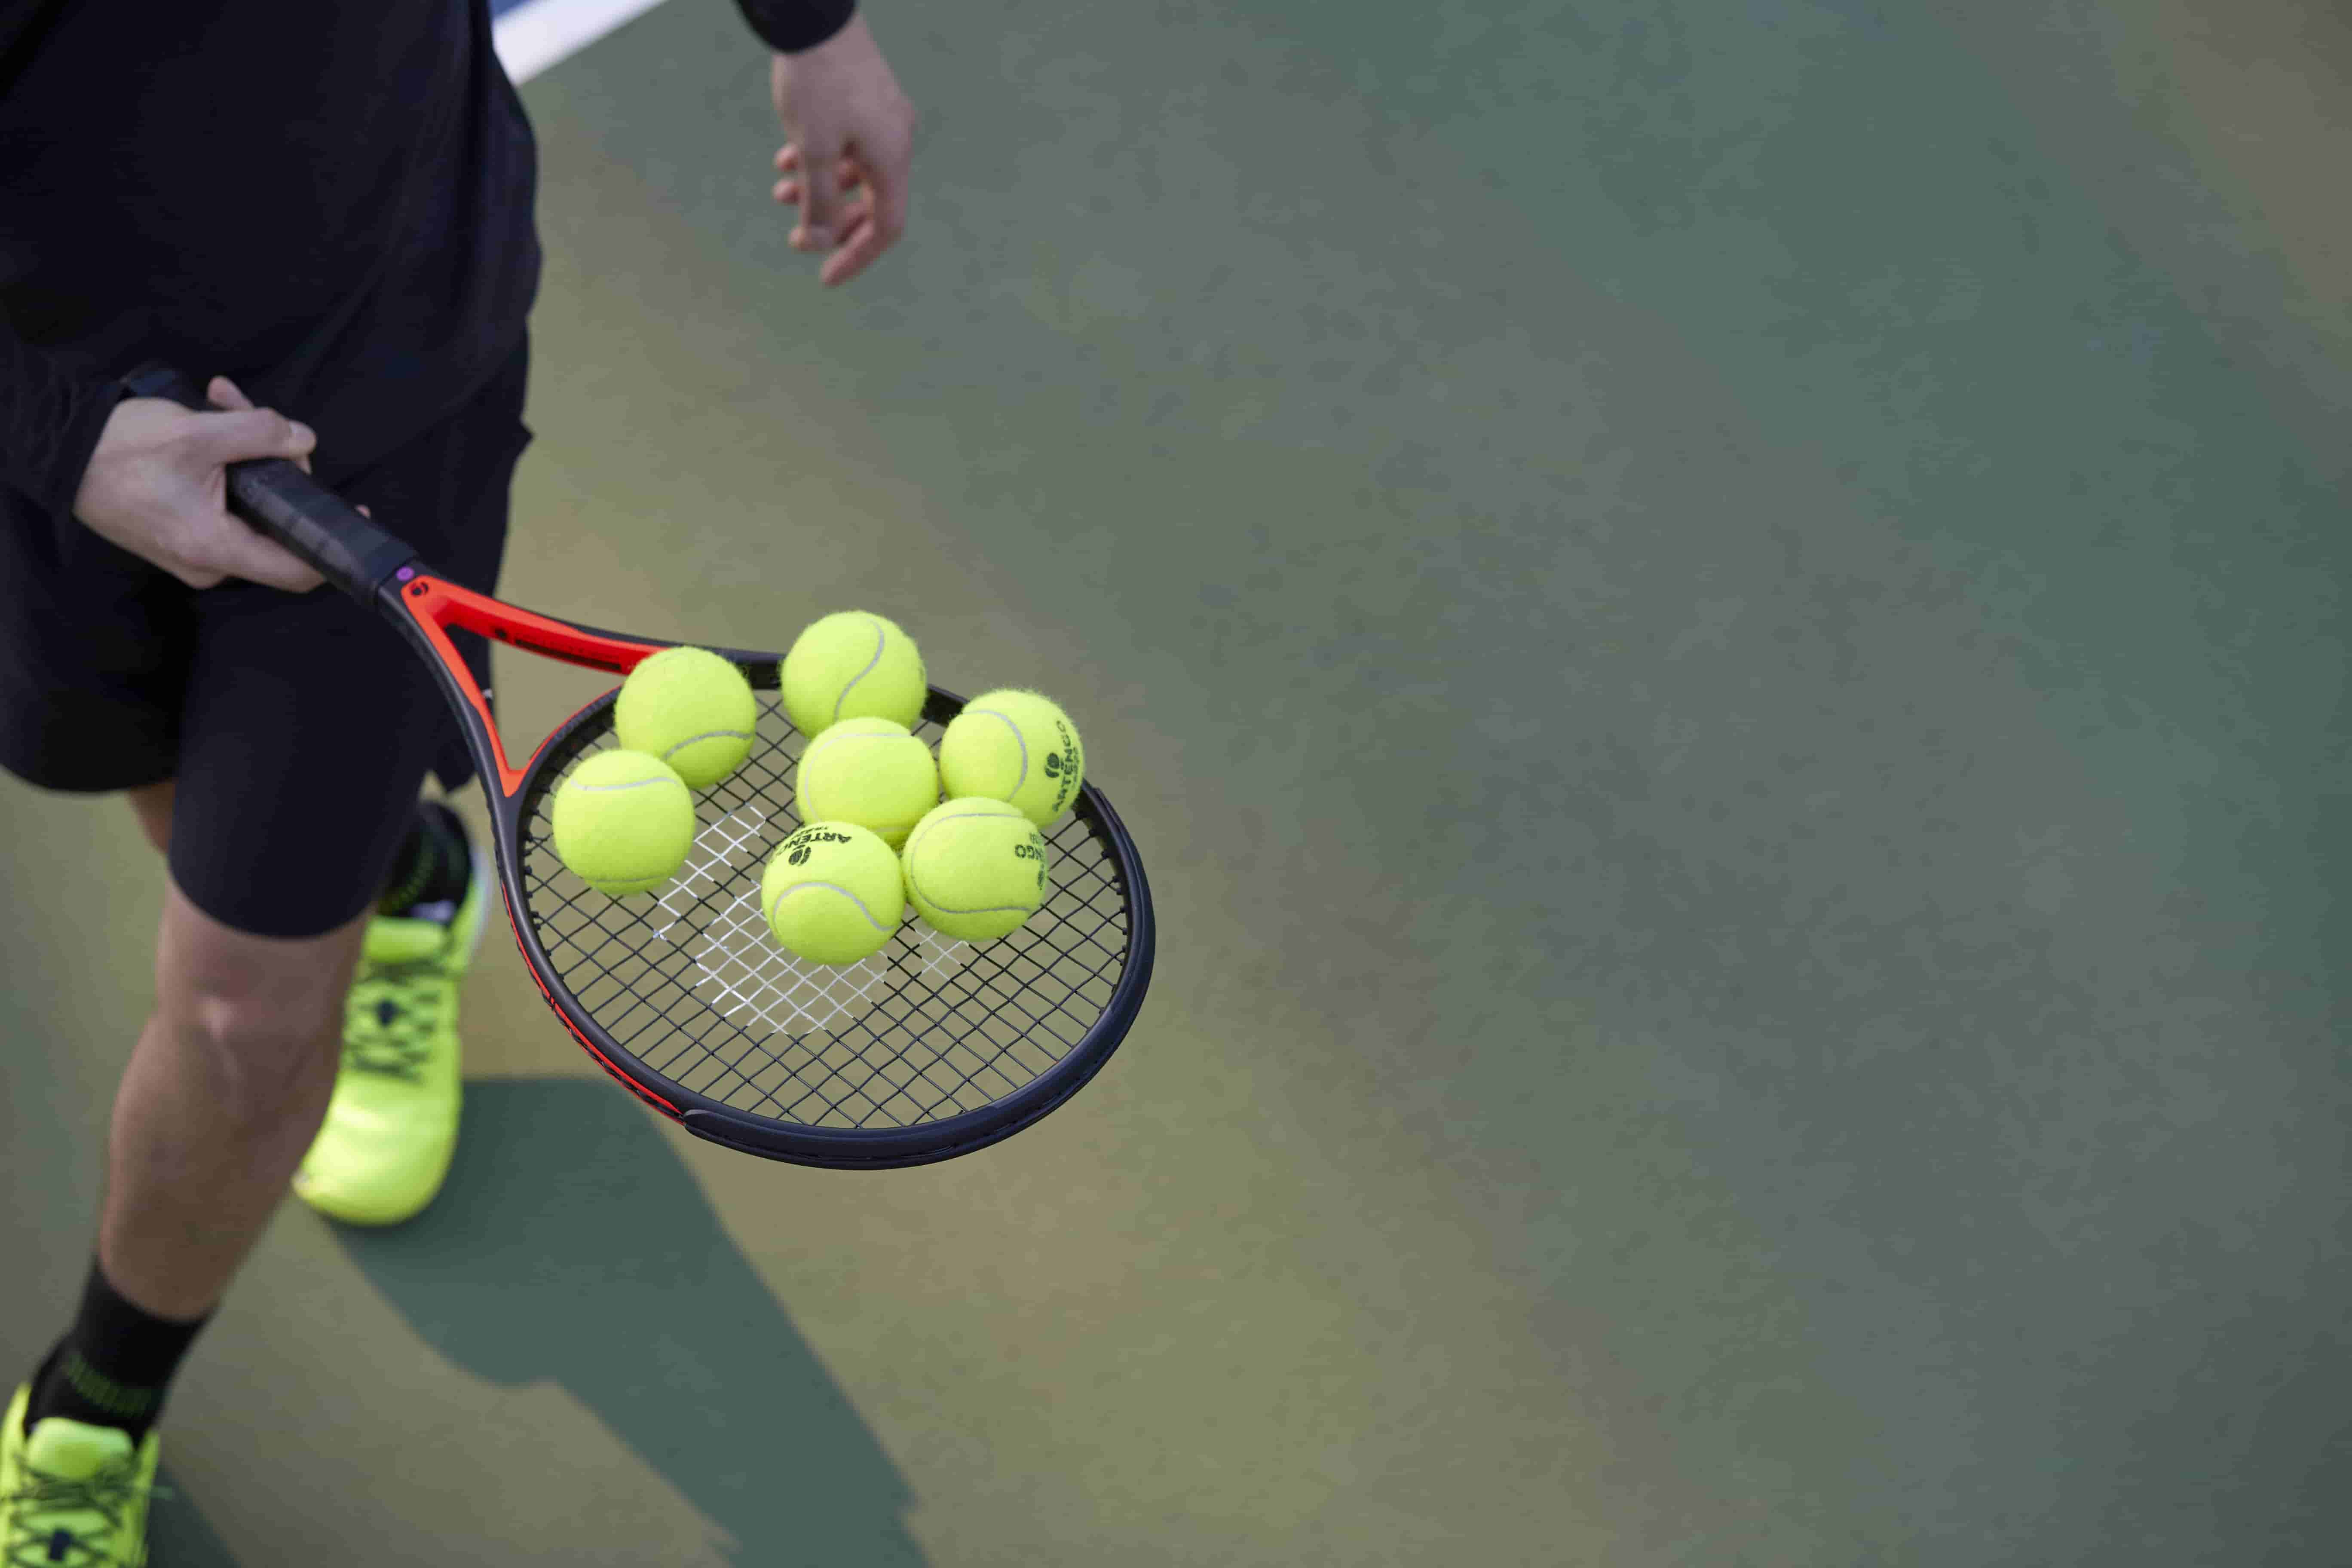 How to play tennis without a court?